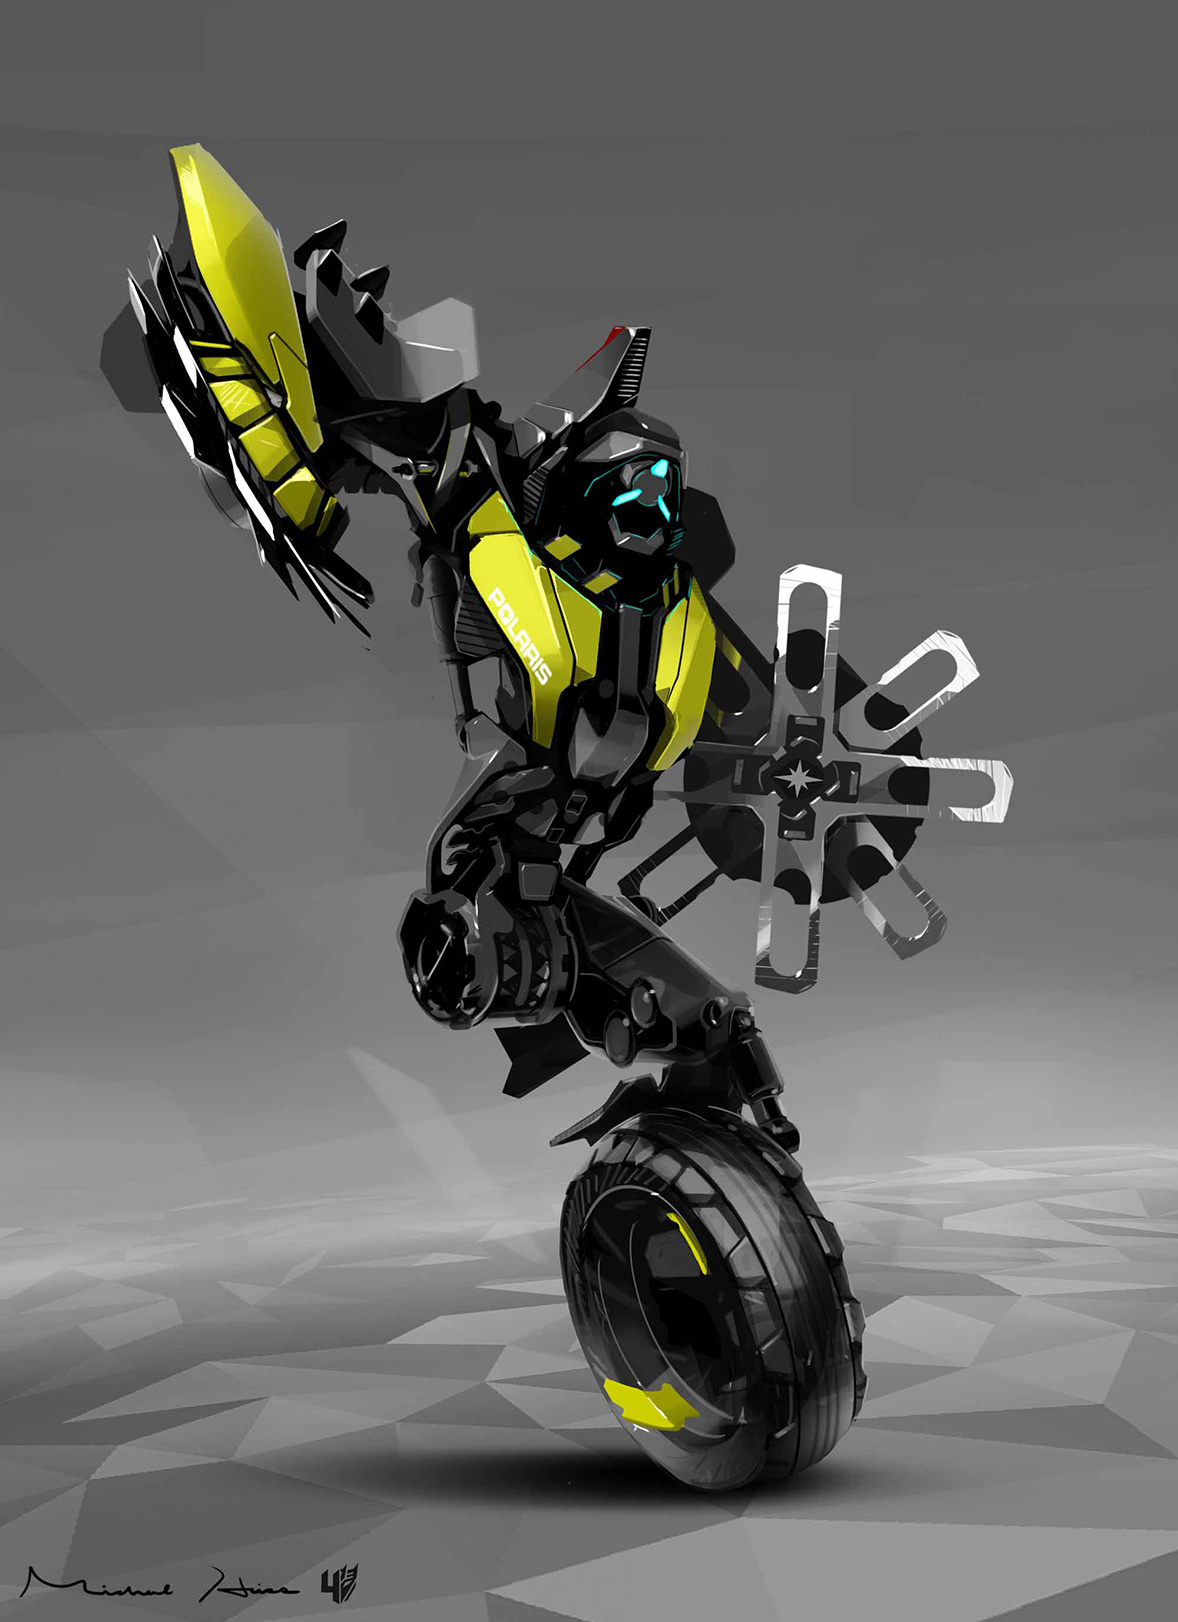 Transformers: Age of Extinction Concept Art from Michael Hritz